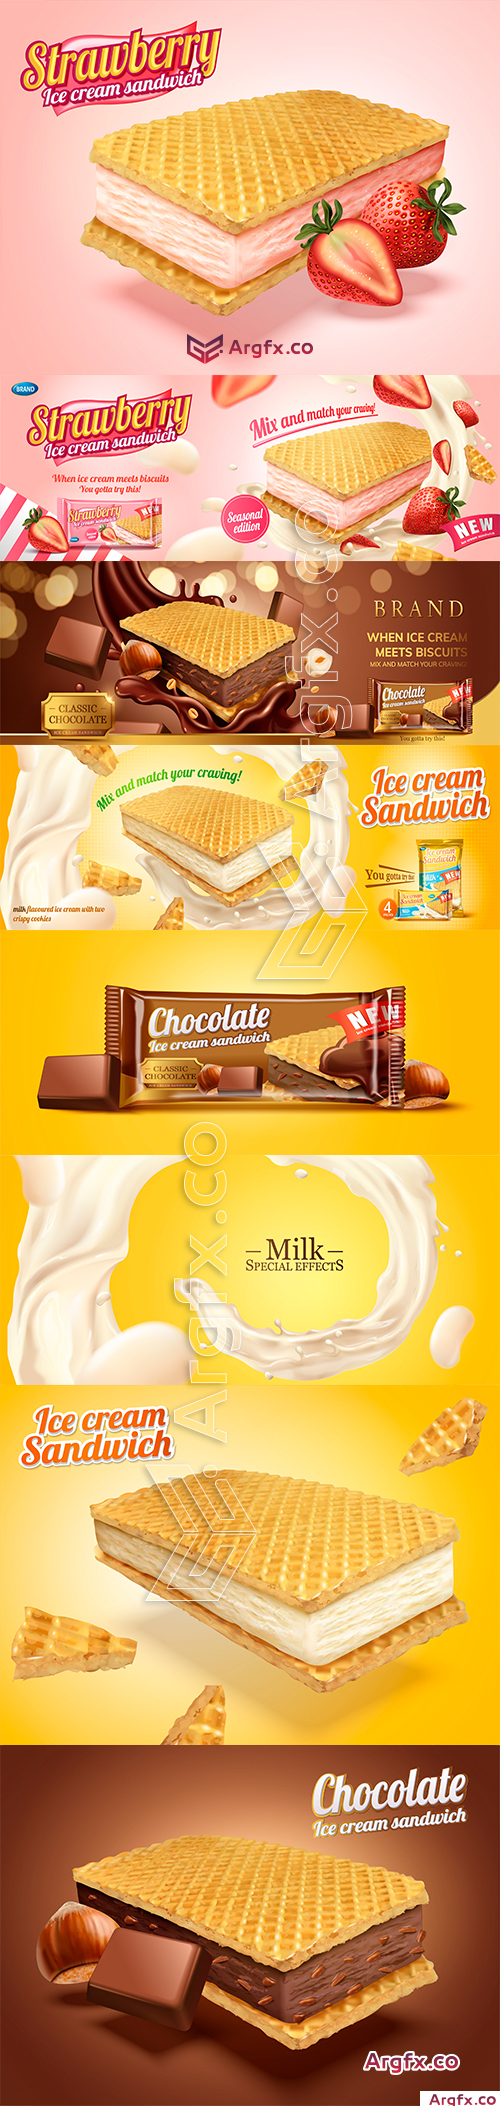 Milk flavoured ice cream sandwich with wafer cookies in 3d illustration